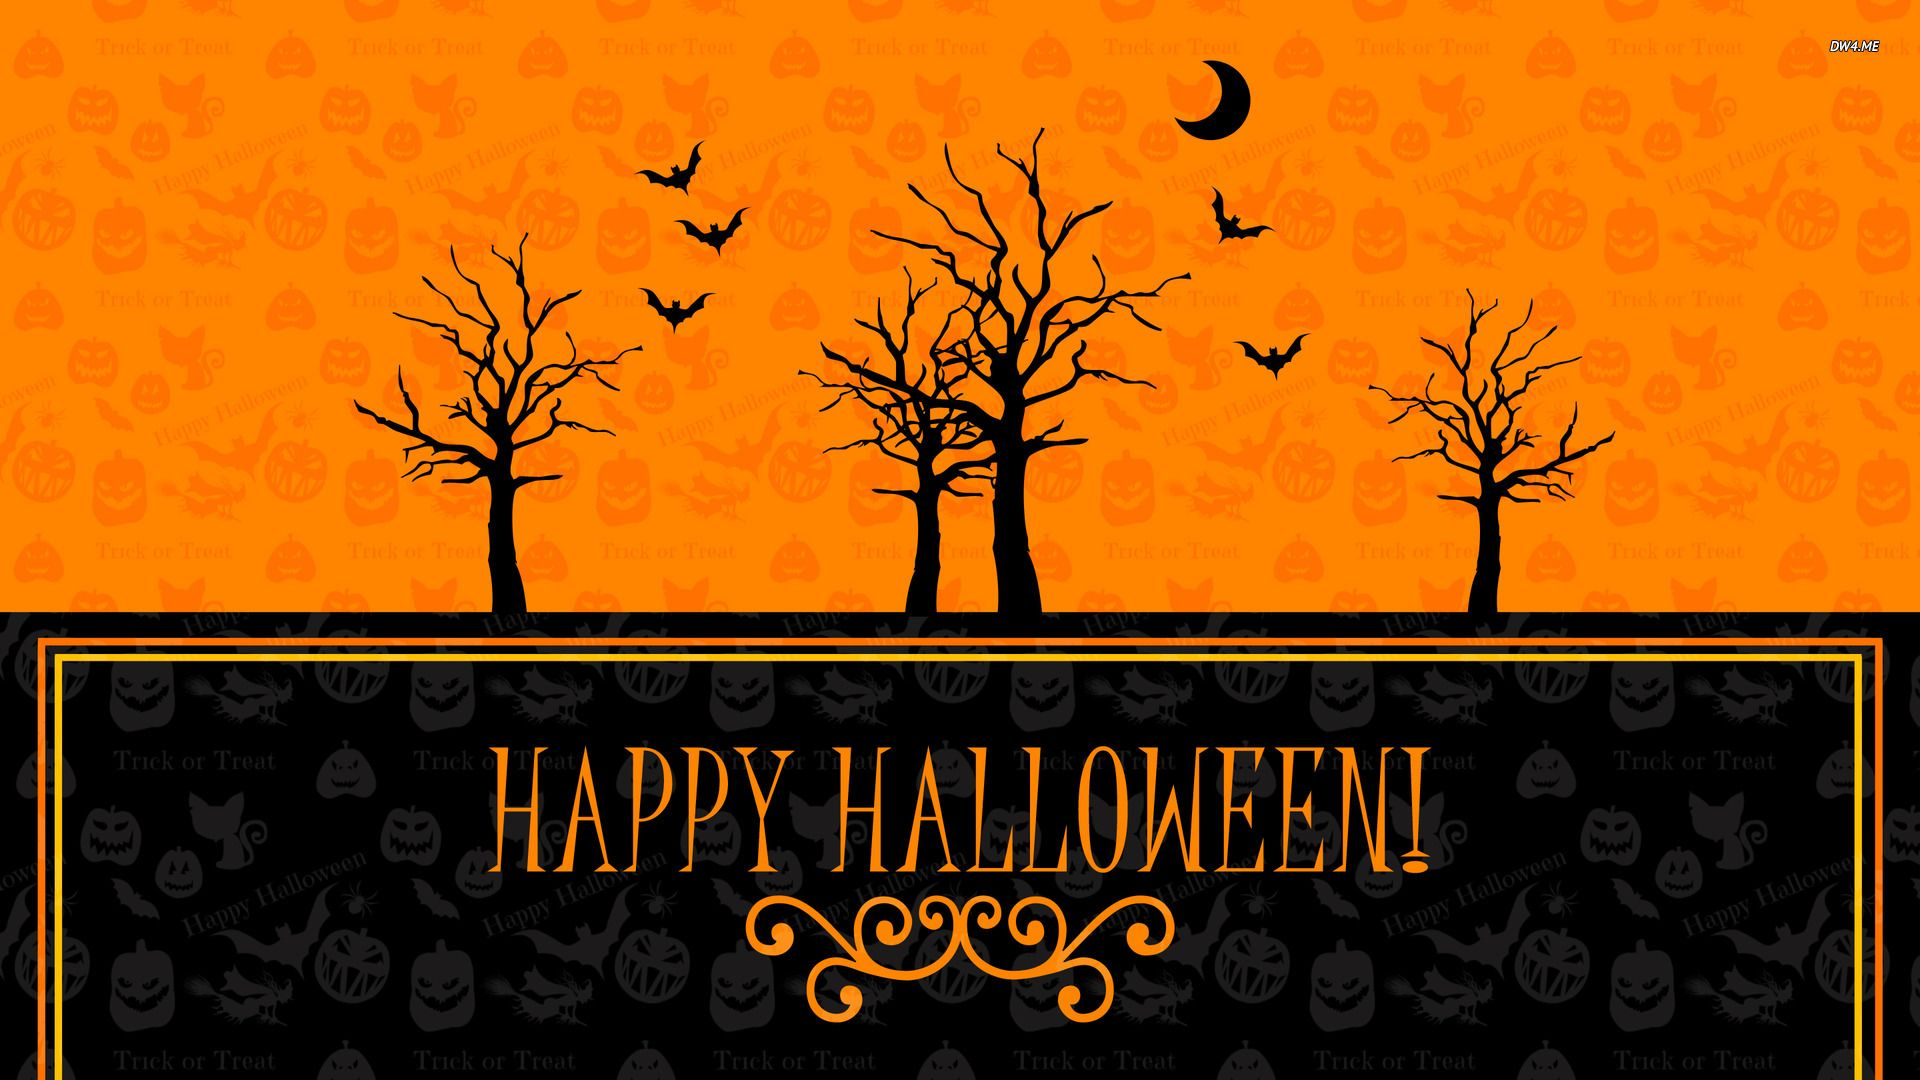 Happy Halloween Wallpaper Desktop Background